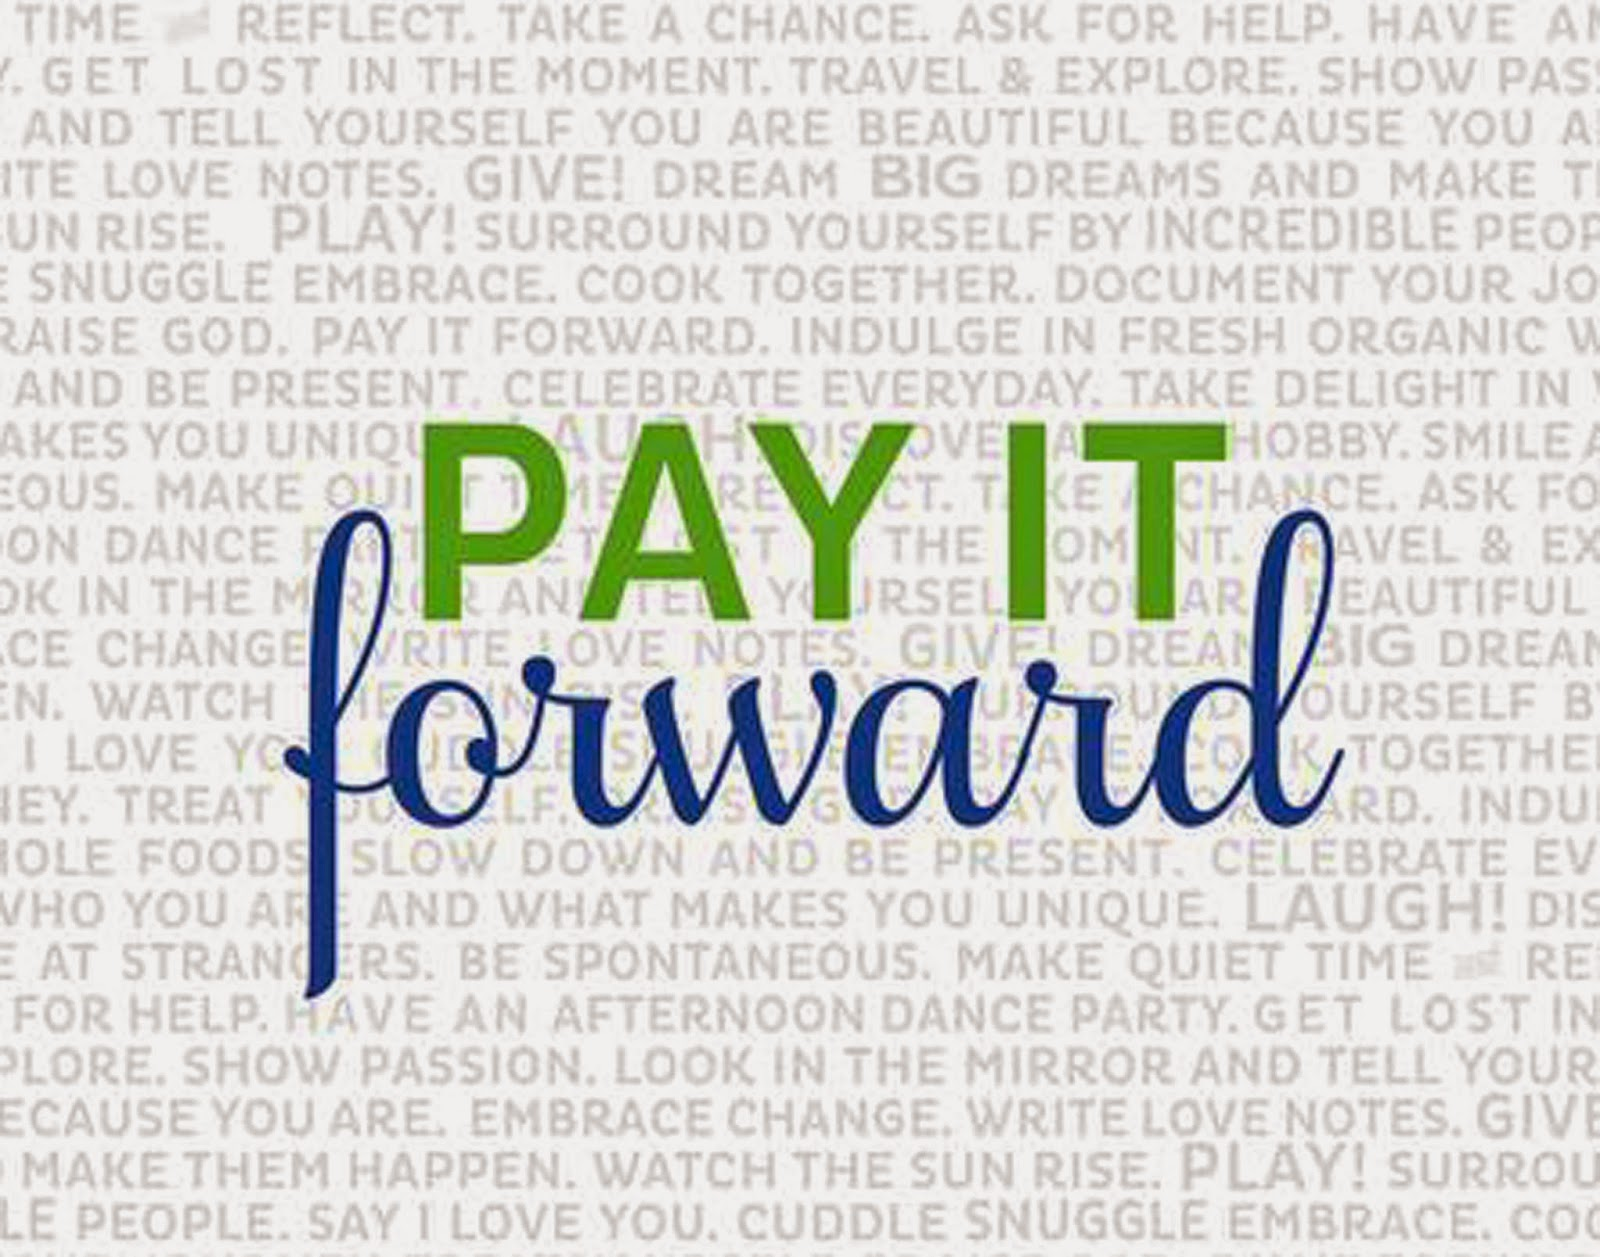 Pay It Forward Quotes Funeral Fund Blog Pay It Forward Day  Gaining Through Giving.